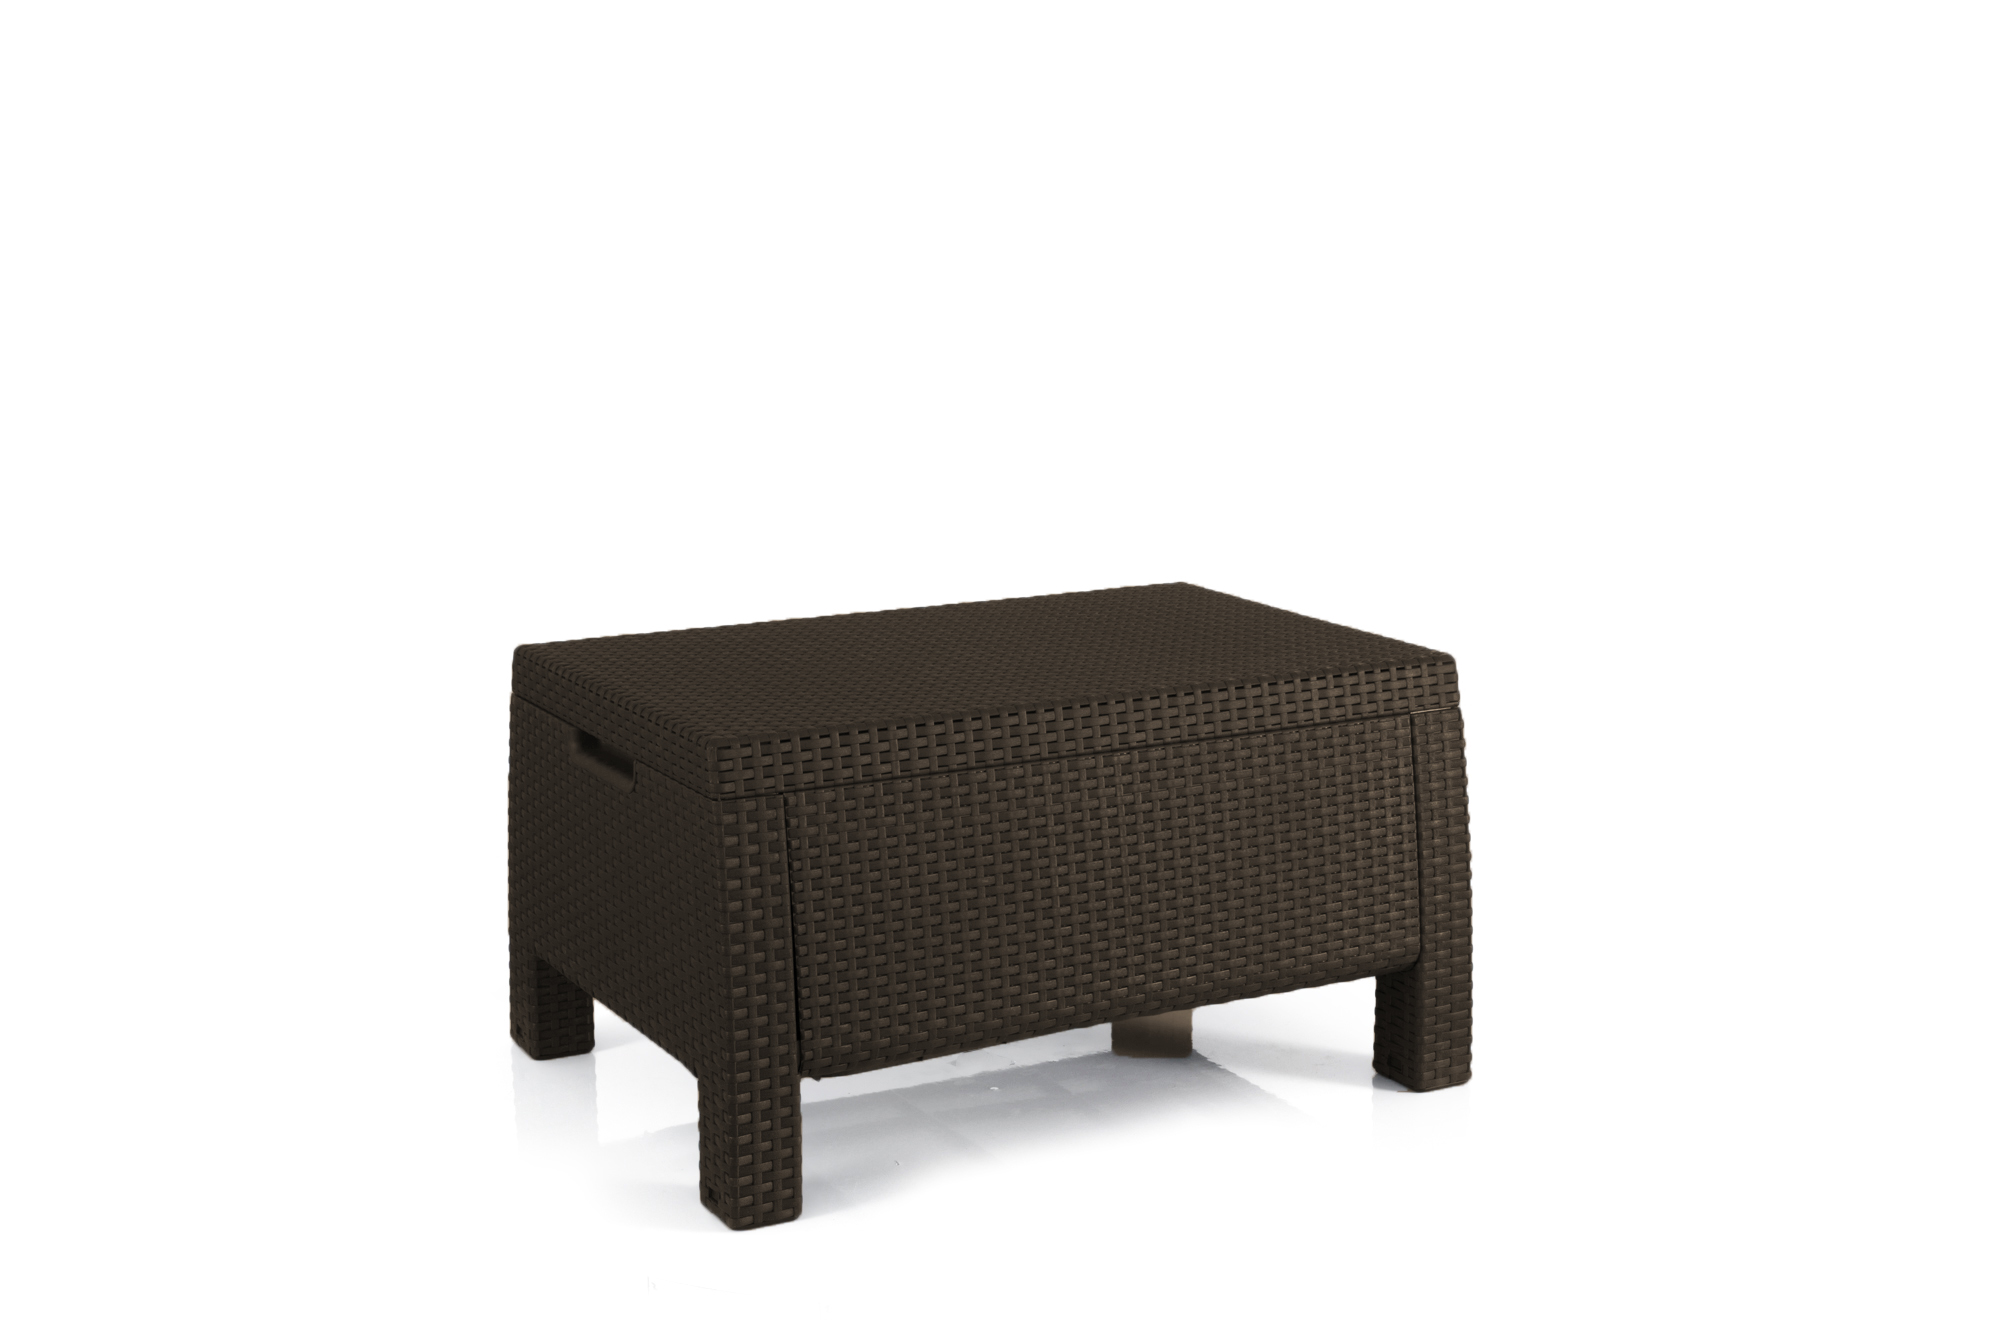 Keter Bahamas Storage Coffee Table Brown, Resin Outdoor Patio Furniture by Keter